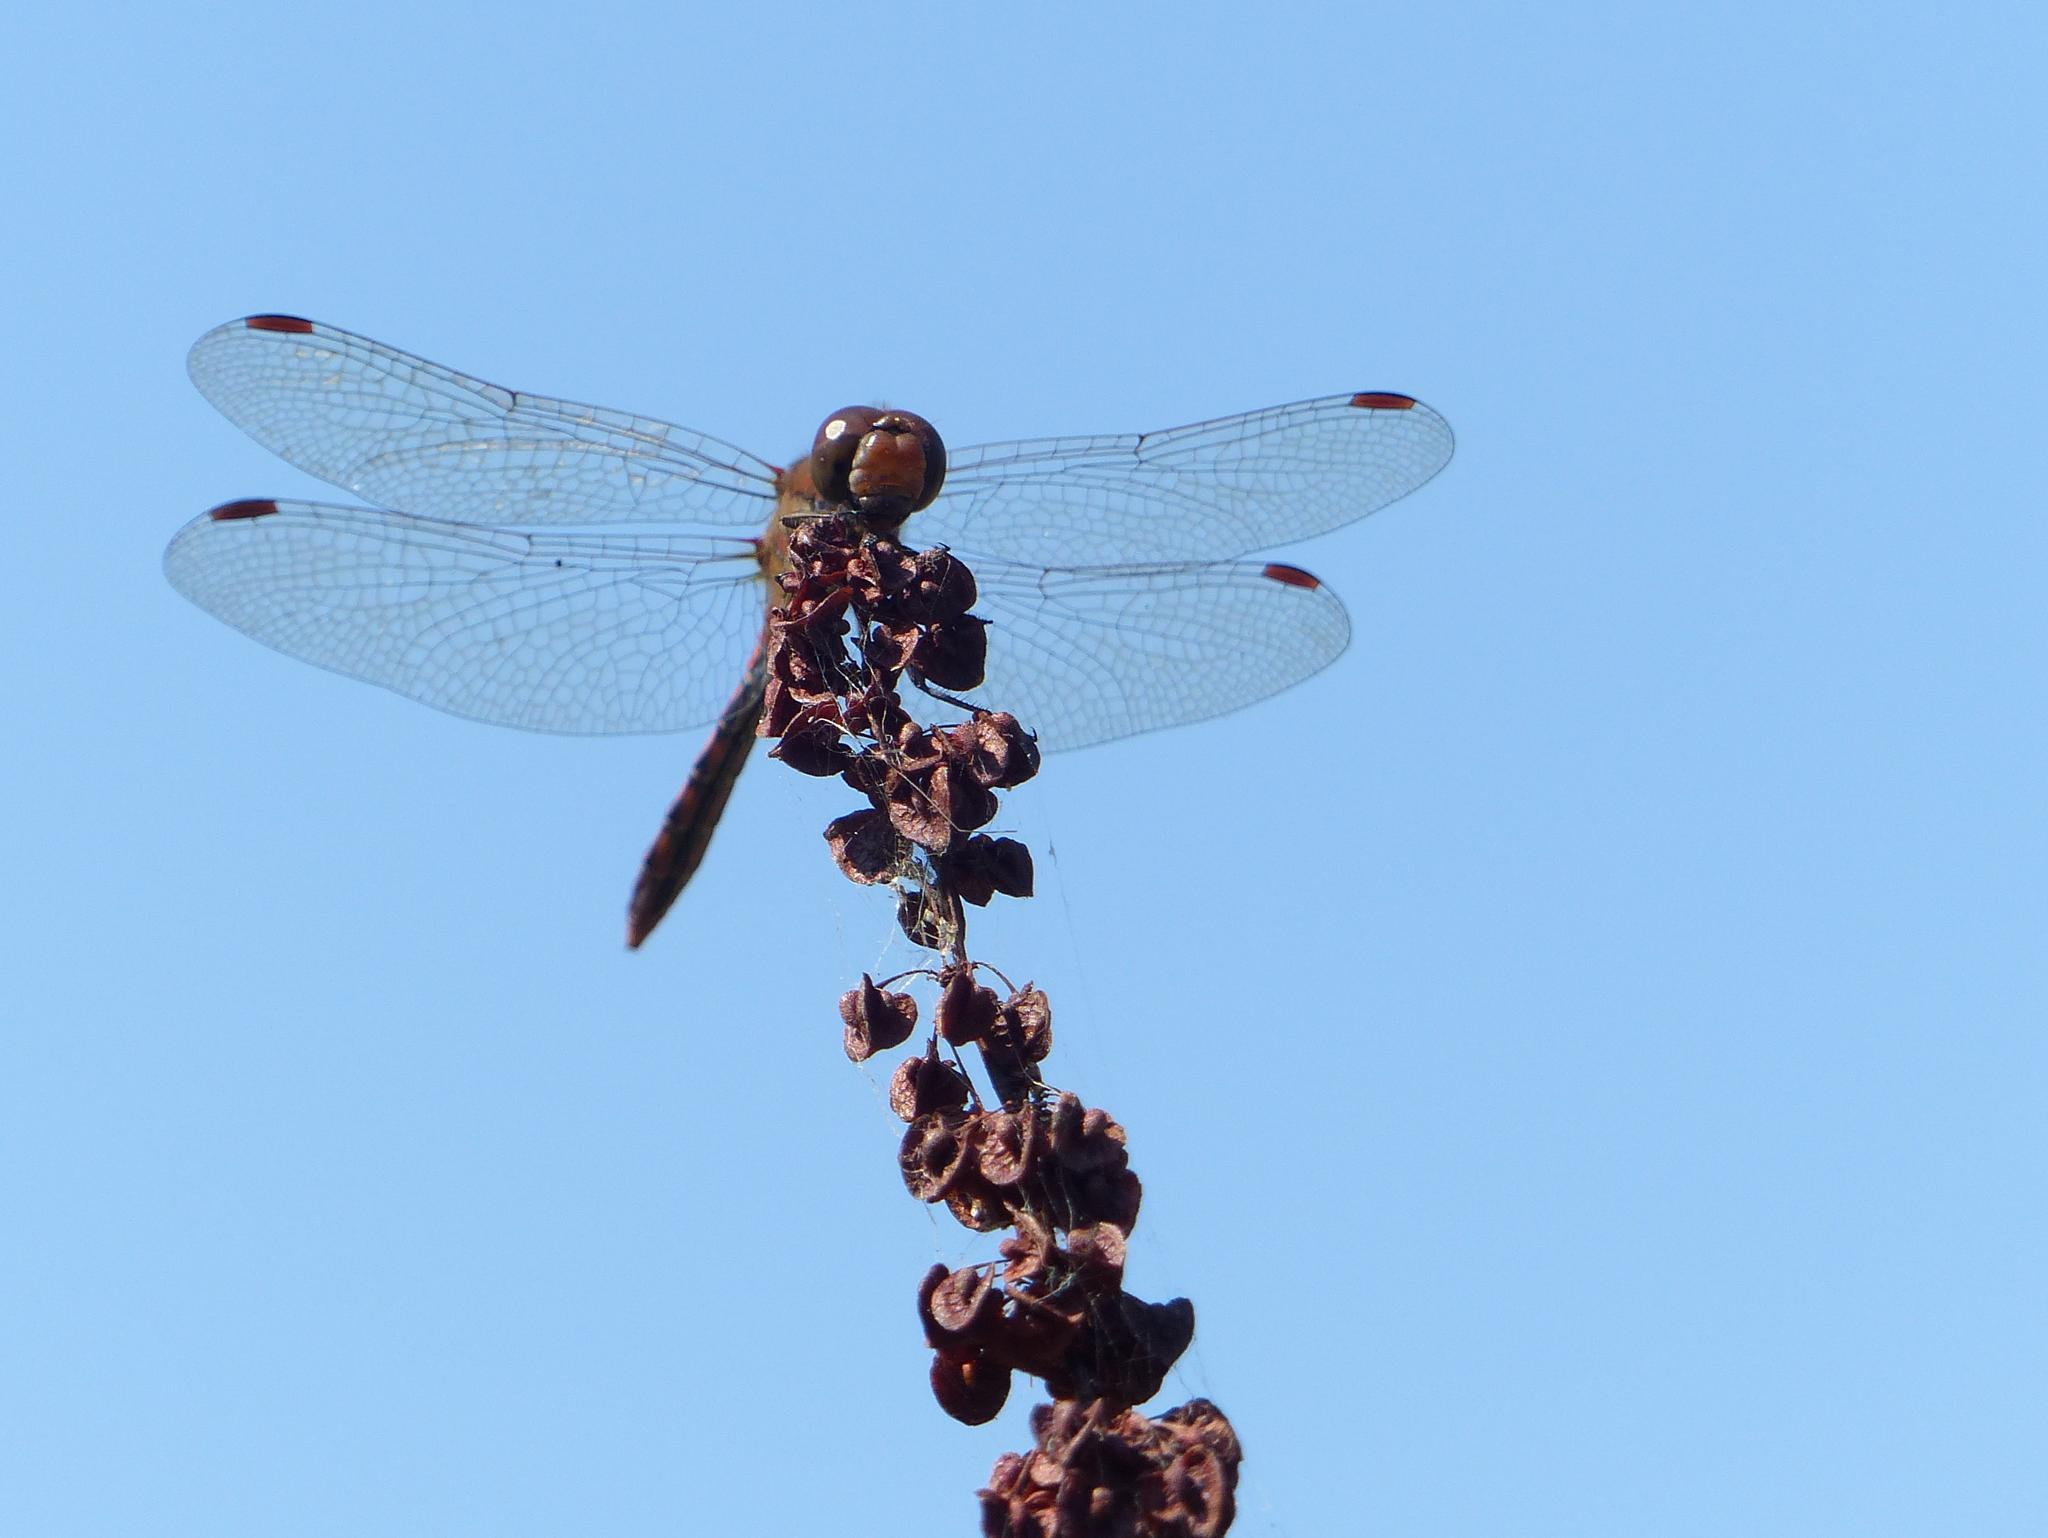 Dragonfly by Lars M.